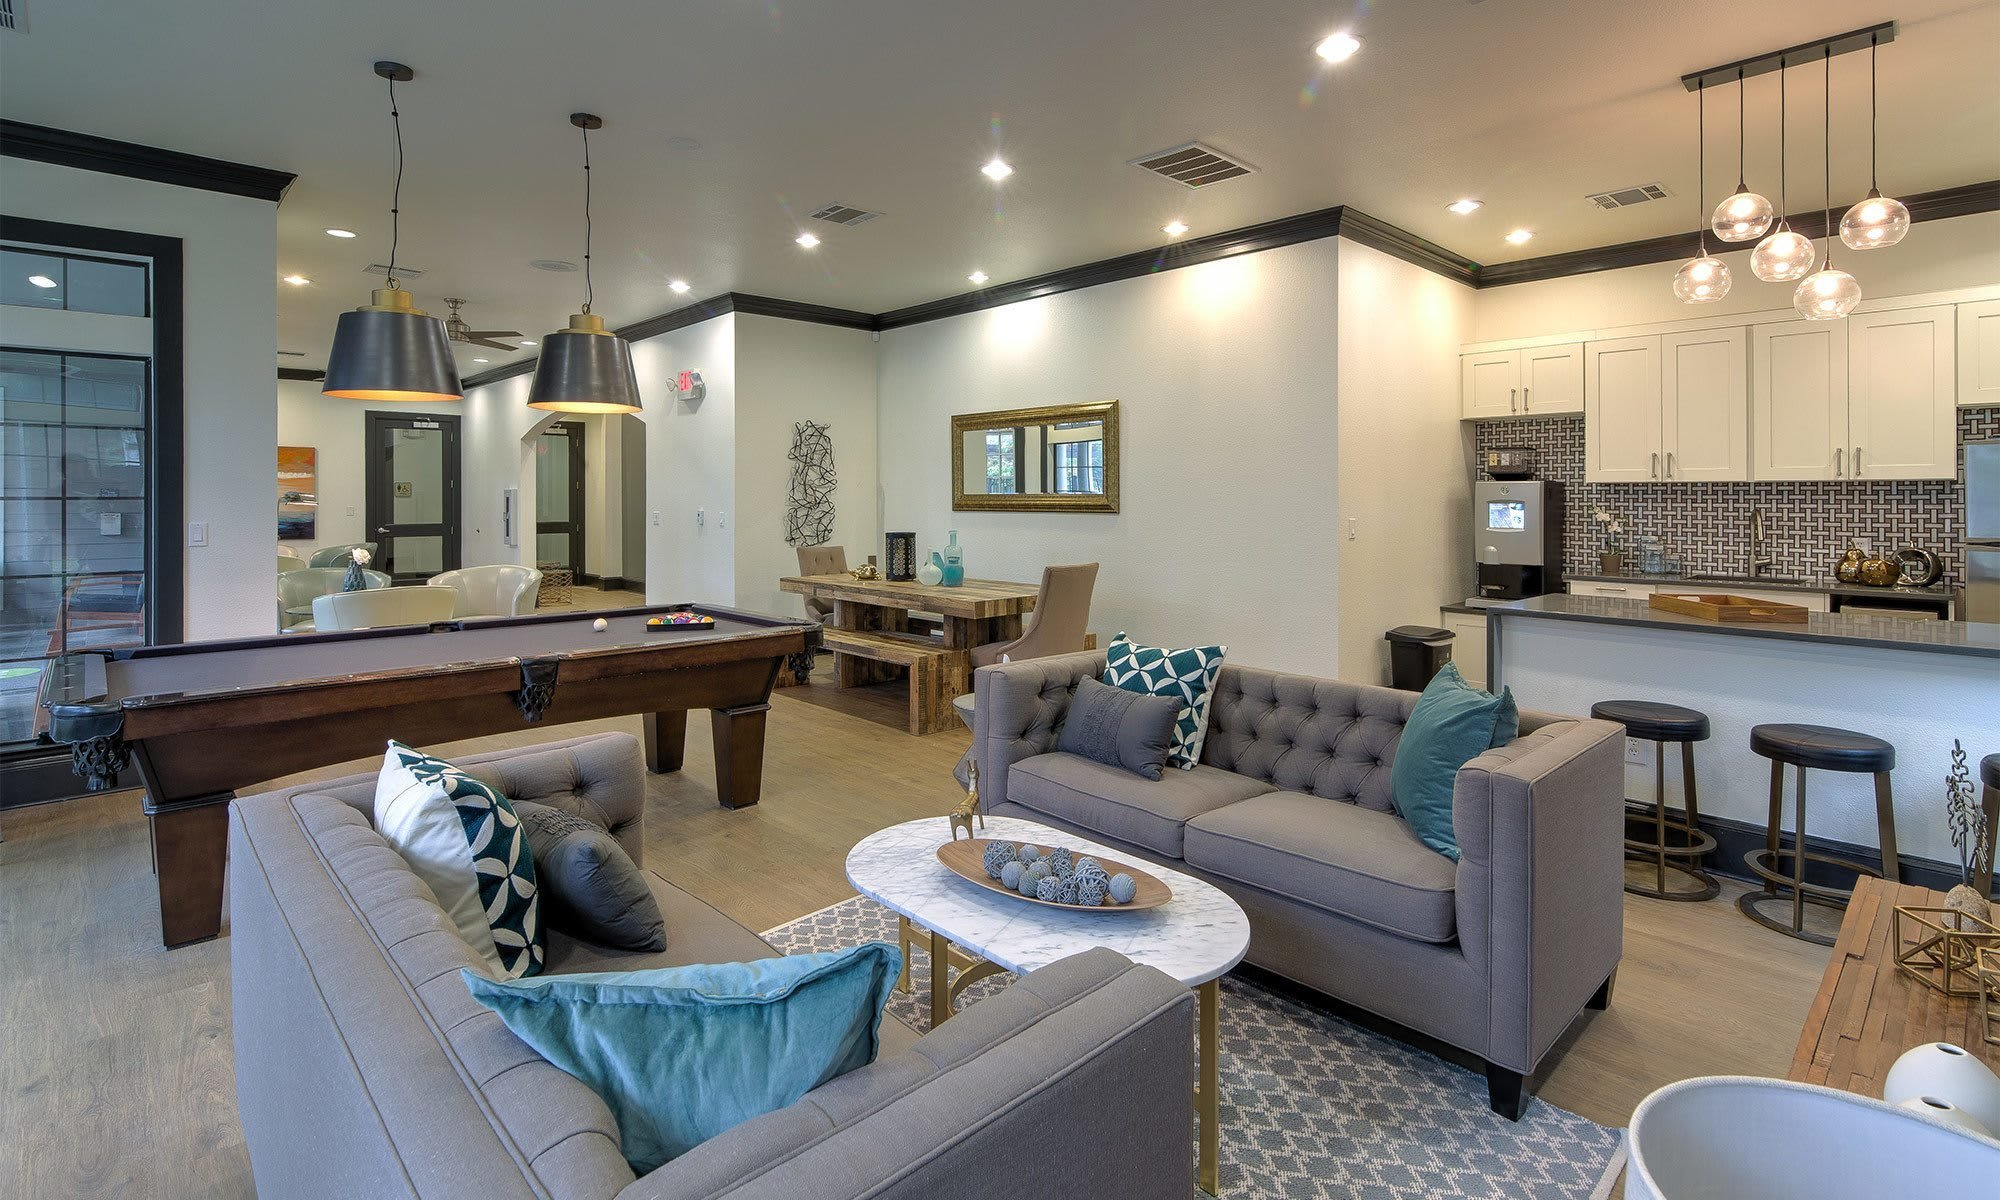 Best Fort Worth Tx Apartments For Rent In The Heart Of Keller City Parc At Keller With Pictures